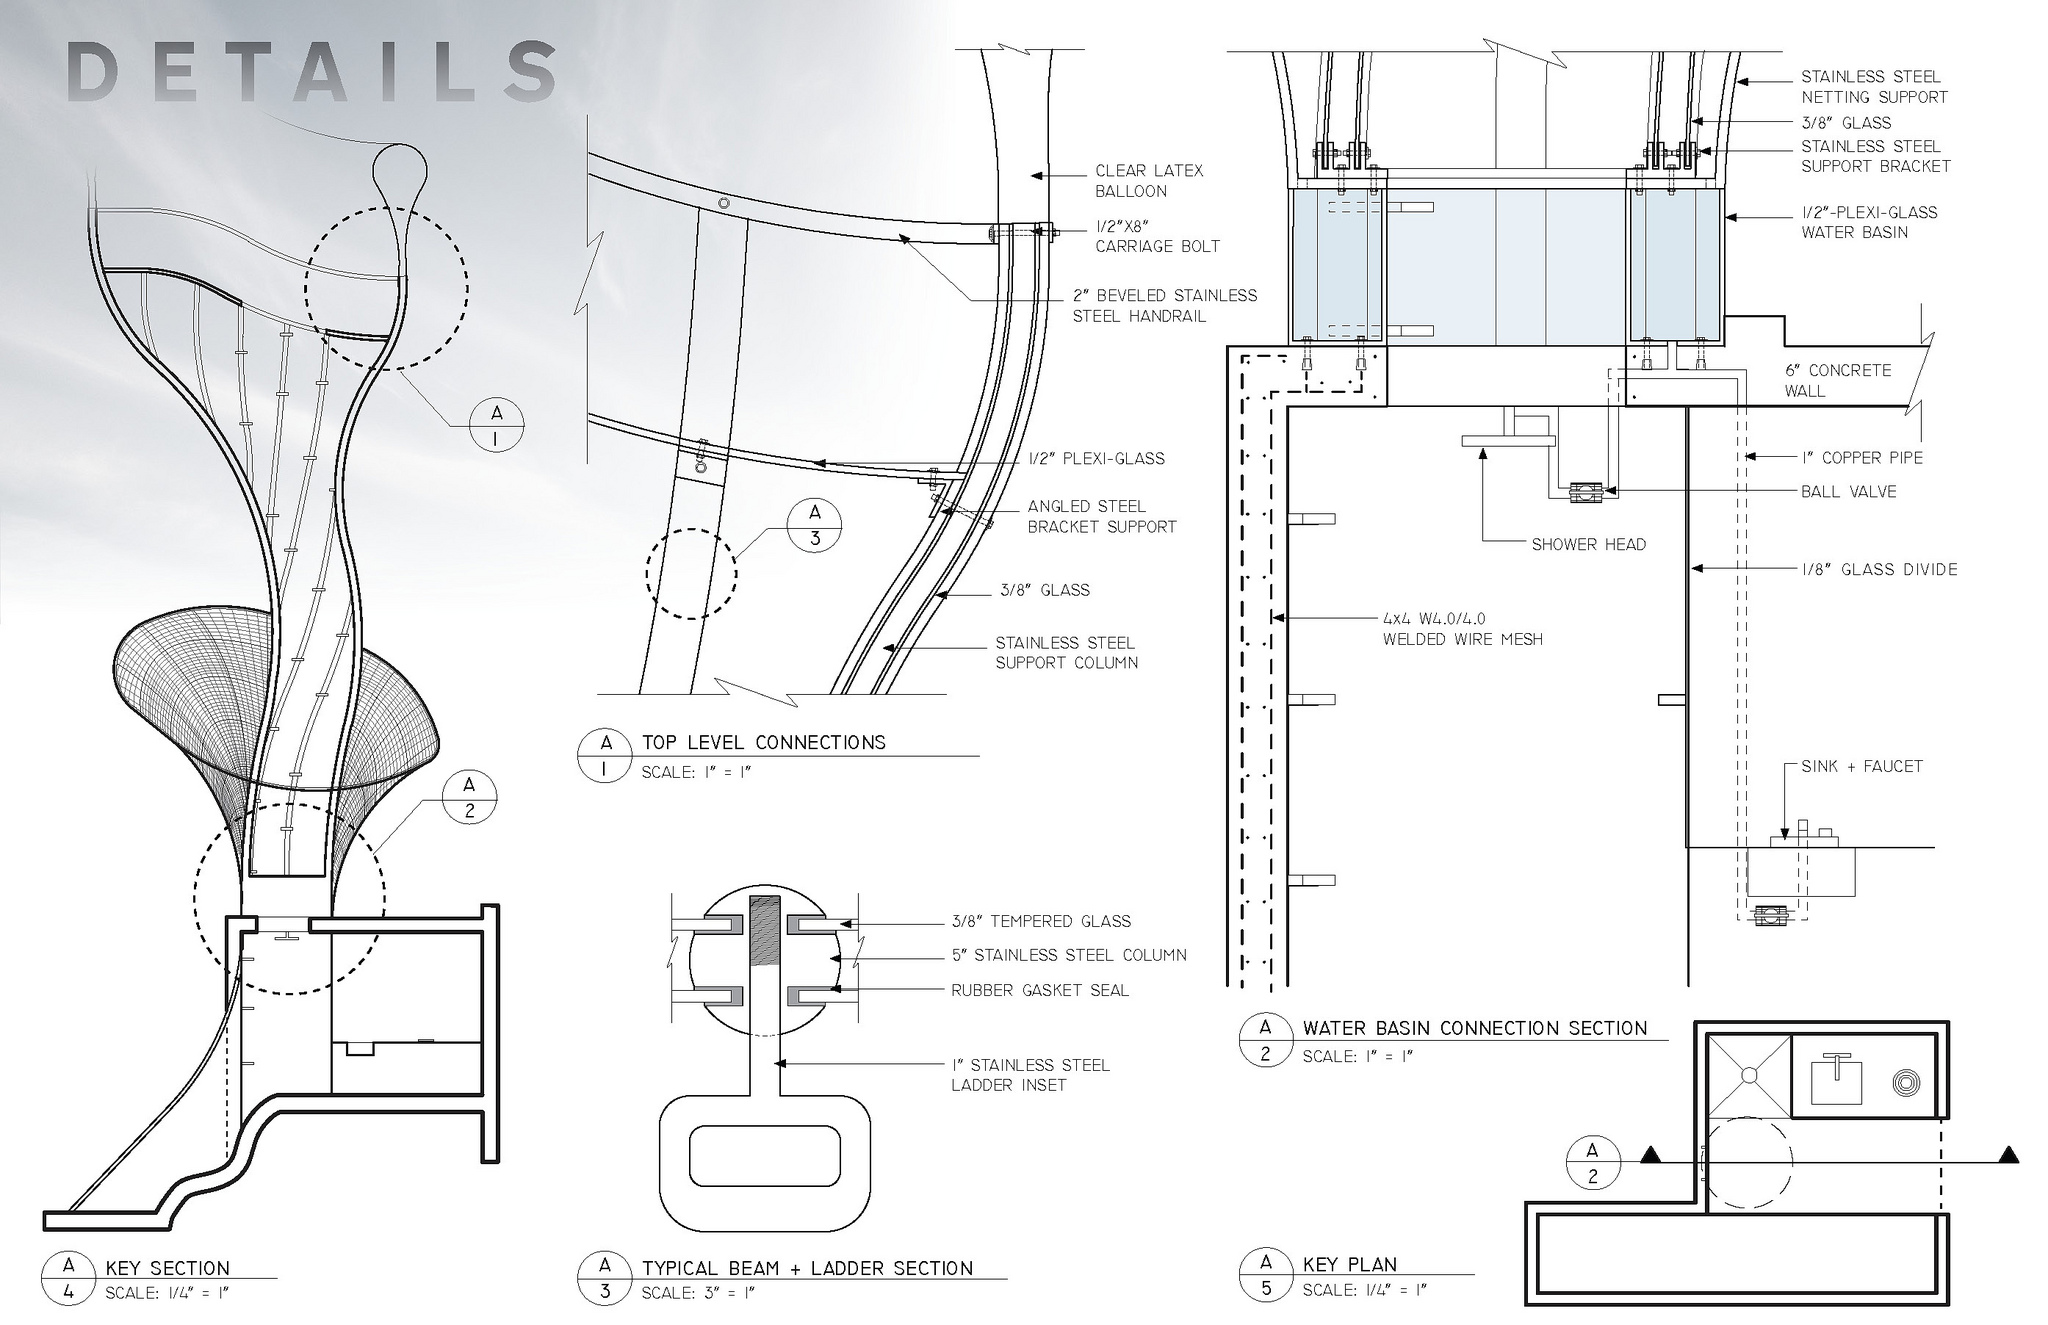 Detail explorations of the structure for critical elements such as structure, hand holds and water harvesting.